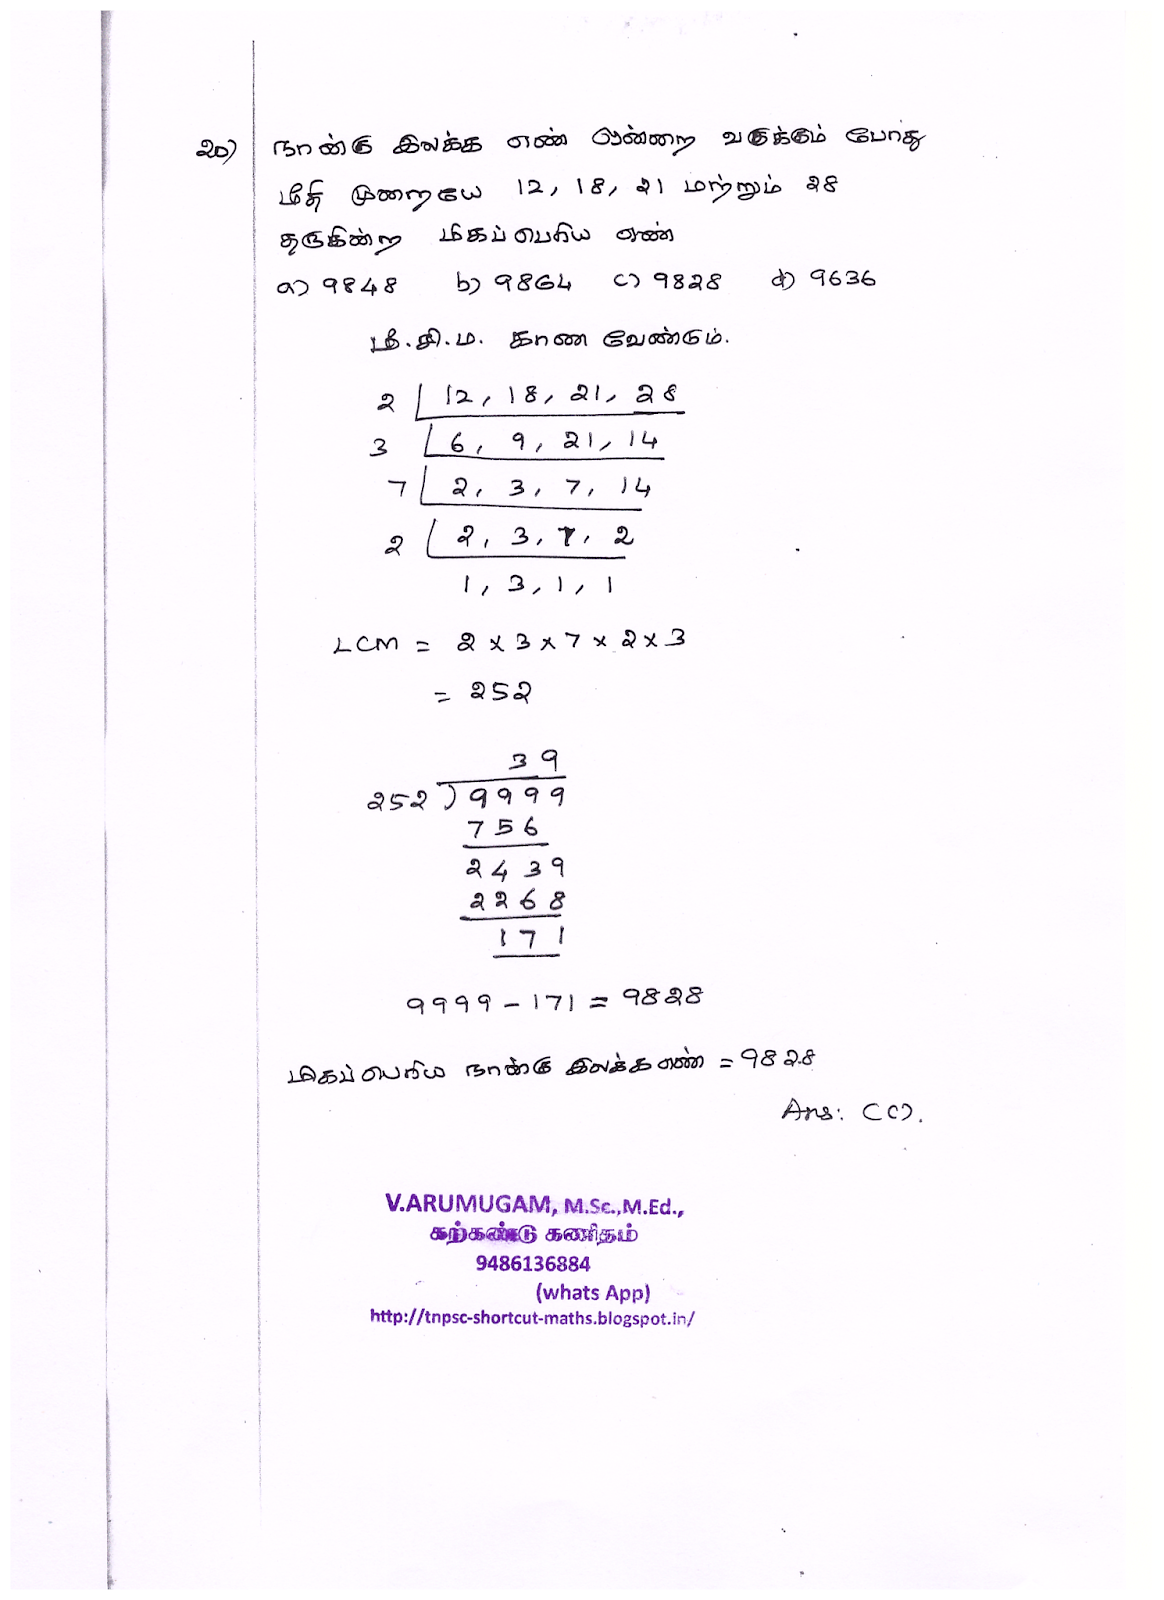 TNPSC – 2019 - Draughtsman, Grade-III in Town and Country Planning Department in the Tamil Nadu Town and country Planning Subordinate Service EXAM - EXAM DATE: 03.02.2019